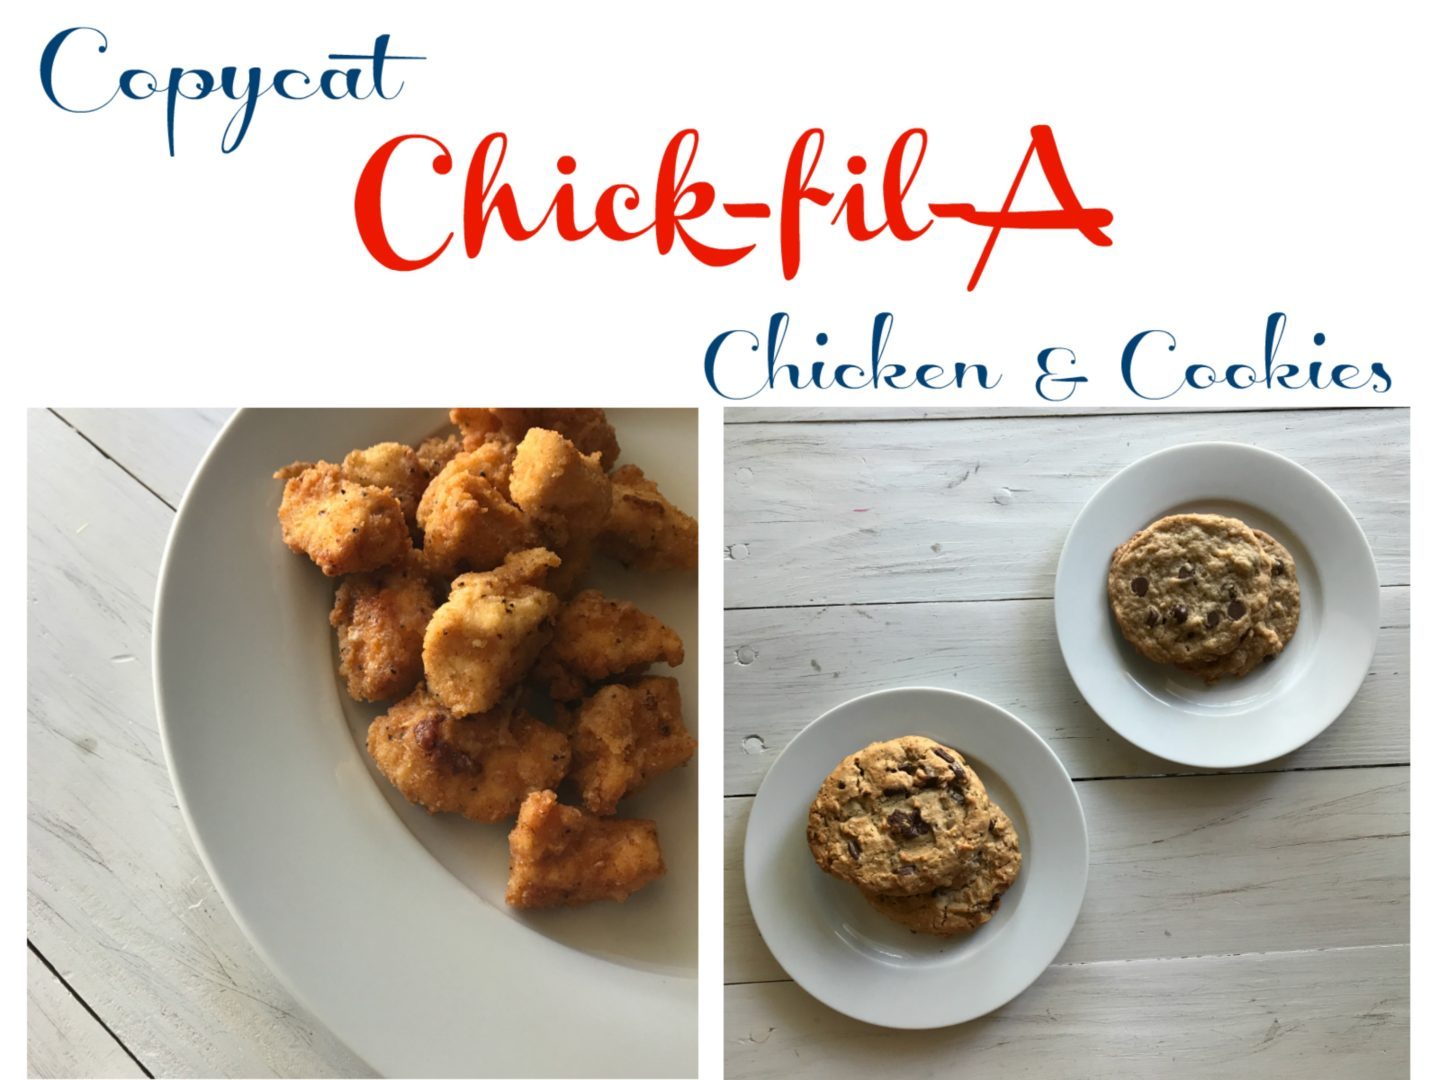 Copycat Chick-fil-A Nuggets and Cookies | AlwaysMovingMommy.com | Want to recreate your Chick-fil-A favorites at home?